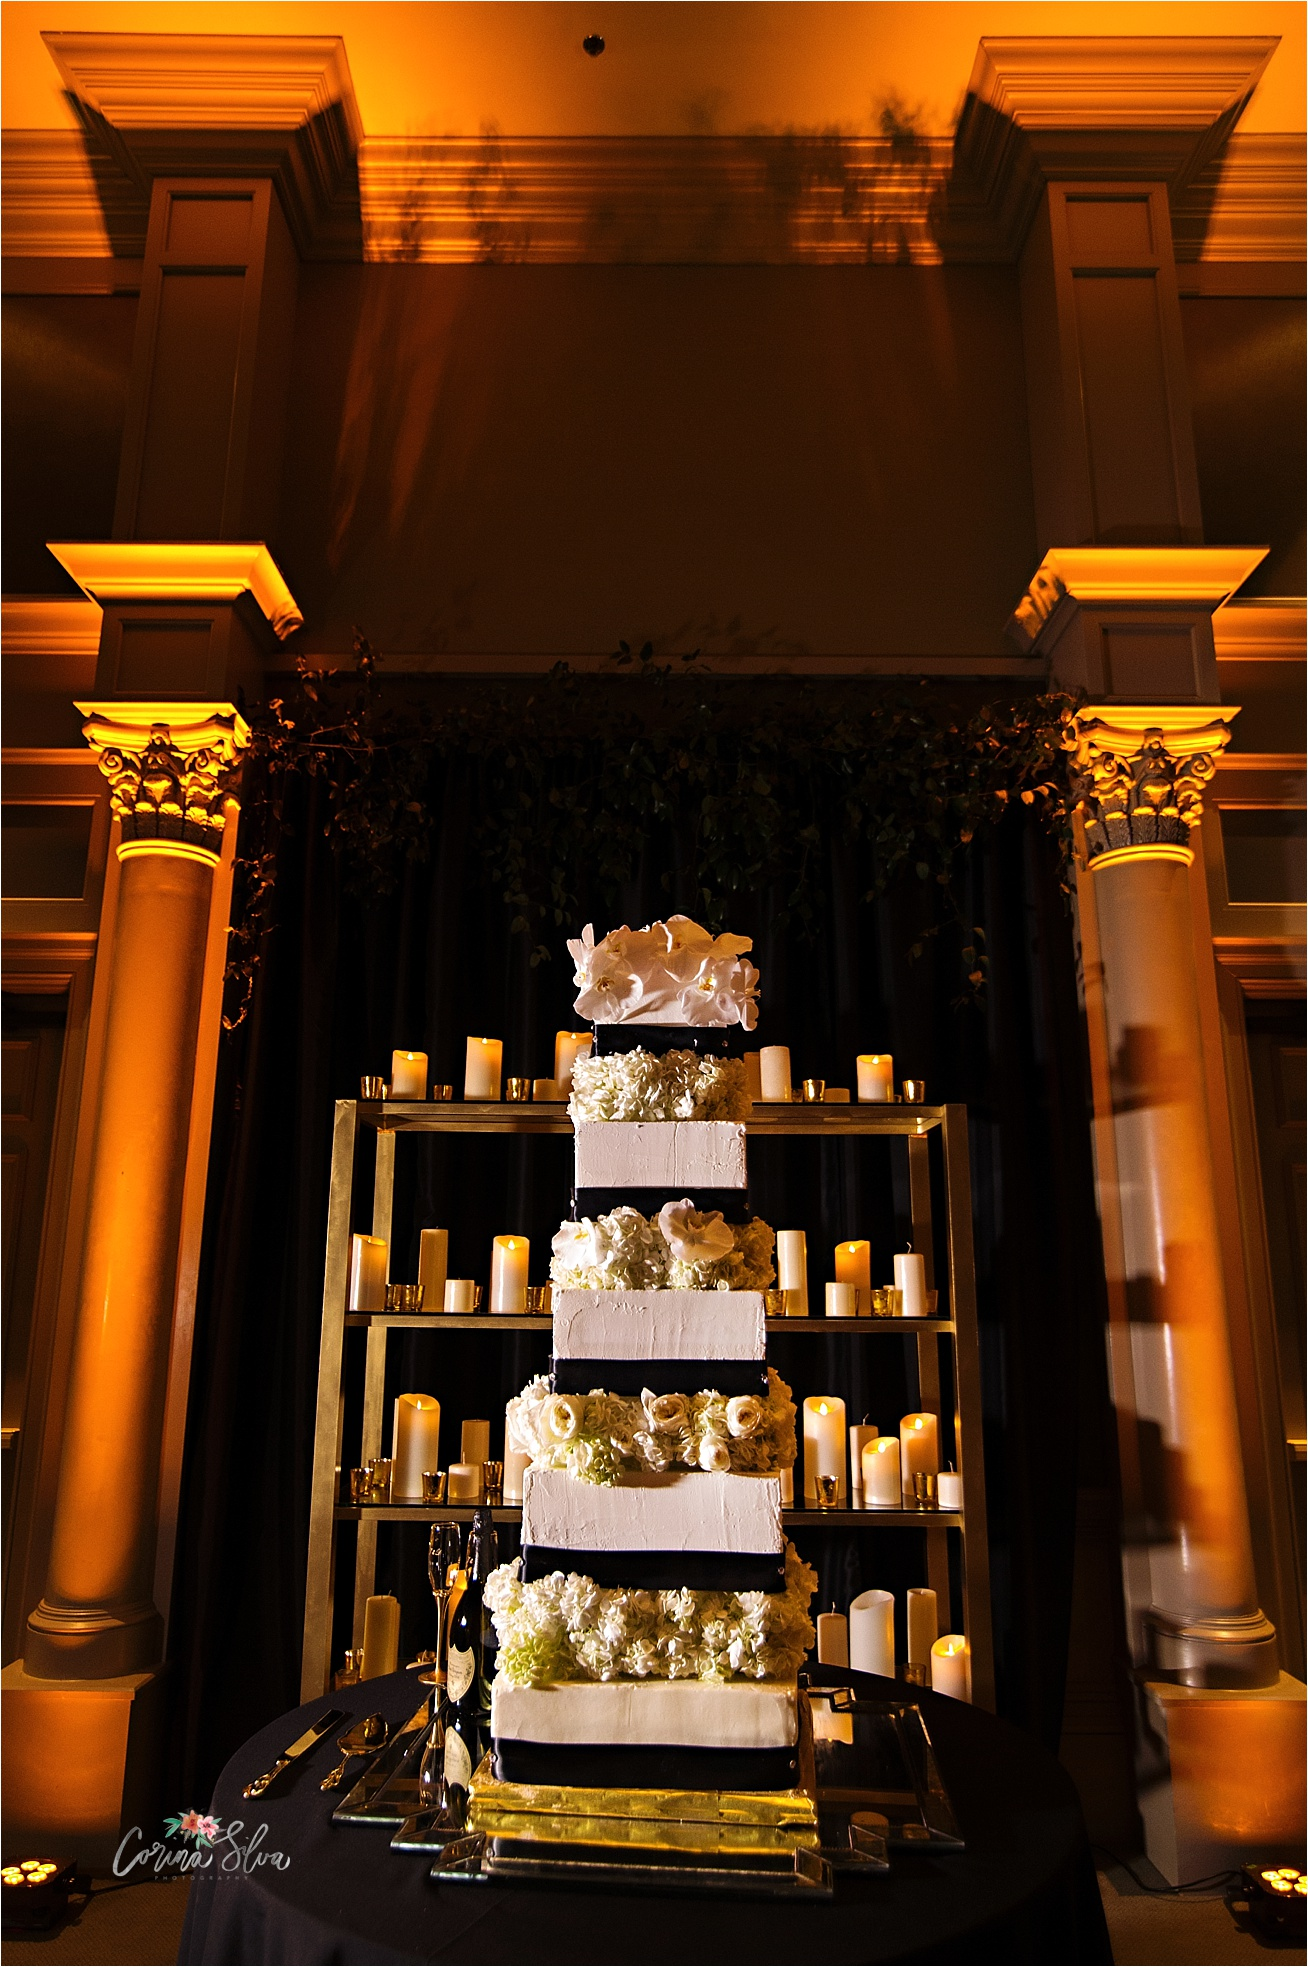 RSG-Event-and-Designs-luxury-wedding-decor-photos, Corina-Silva-Studios_0022.jpg